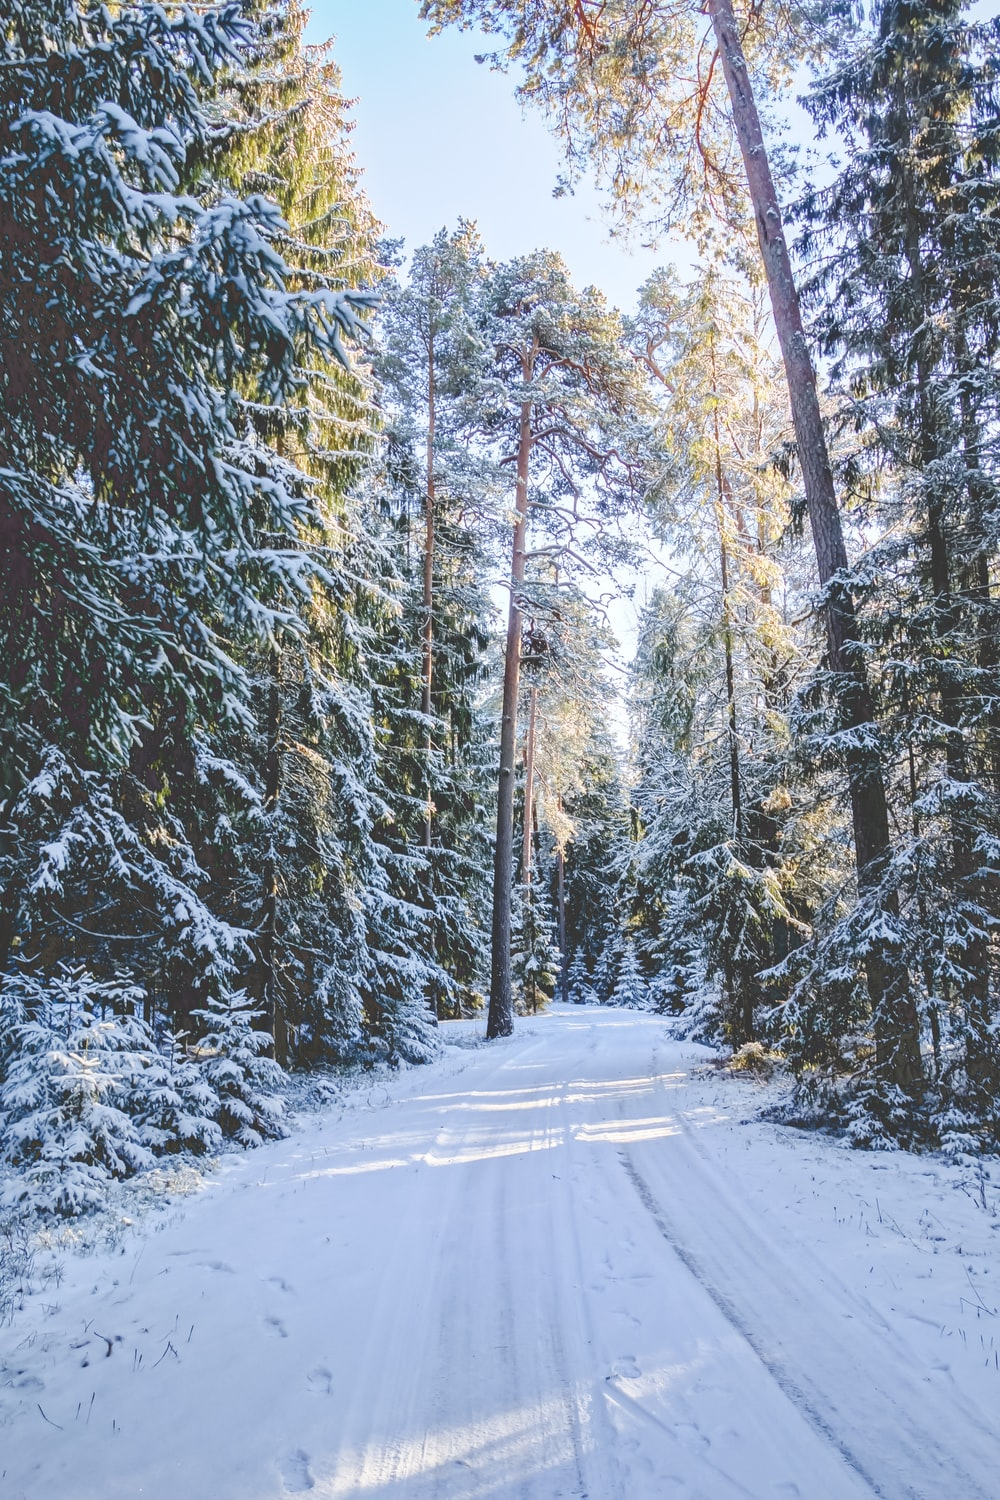 snow-covered road surrounded by trees during daytime